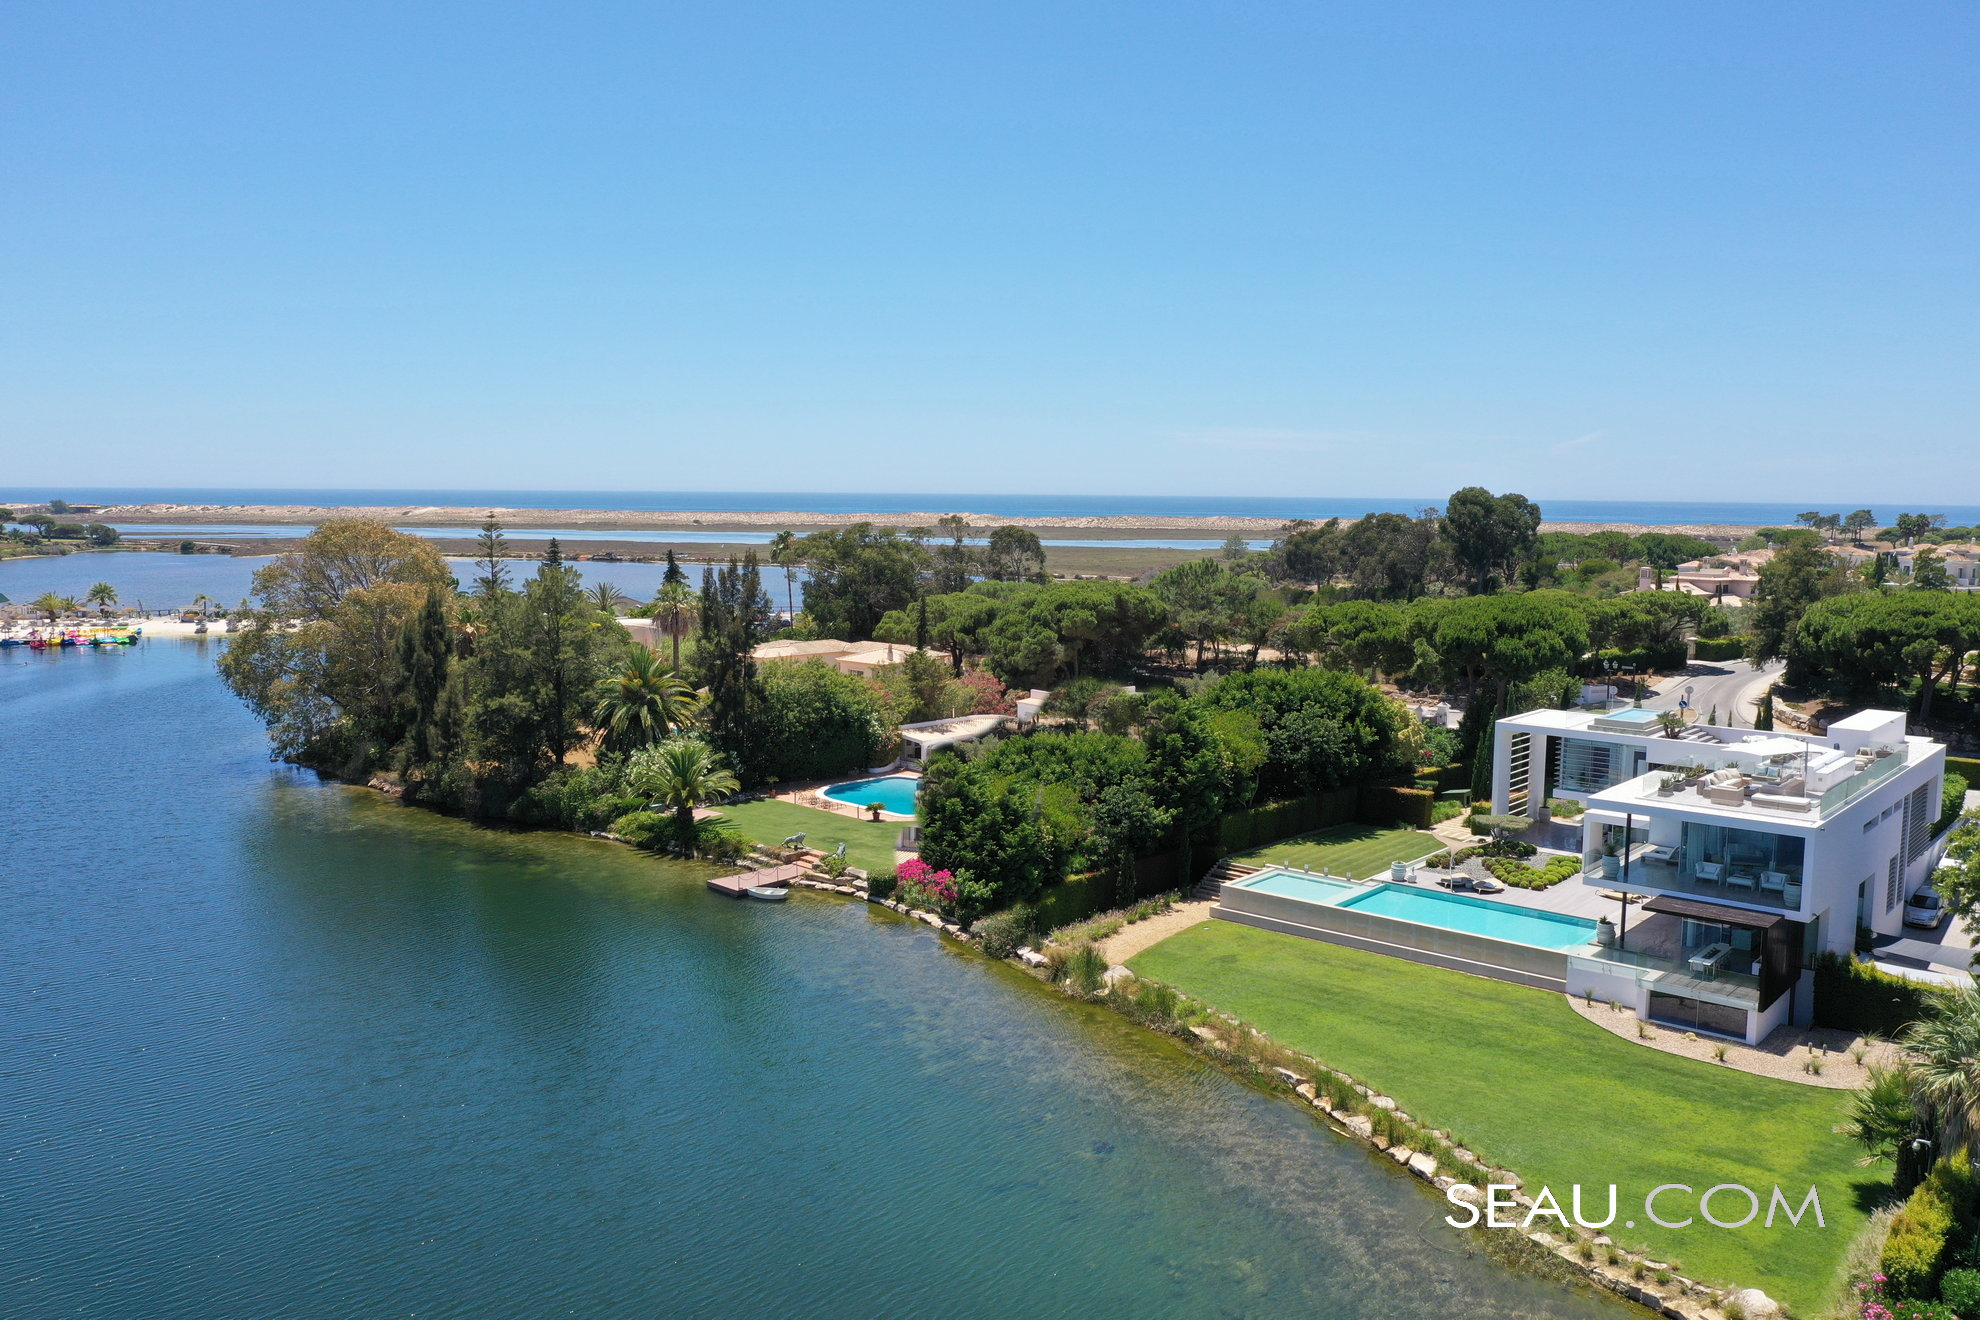 Super villa in Quinta do Lago, with a spectacular location, facing the lake, next to the Ria Formosa